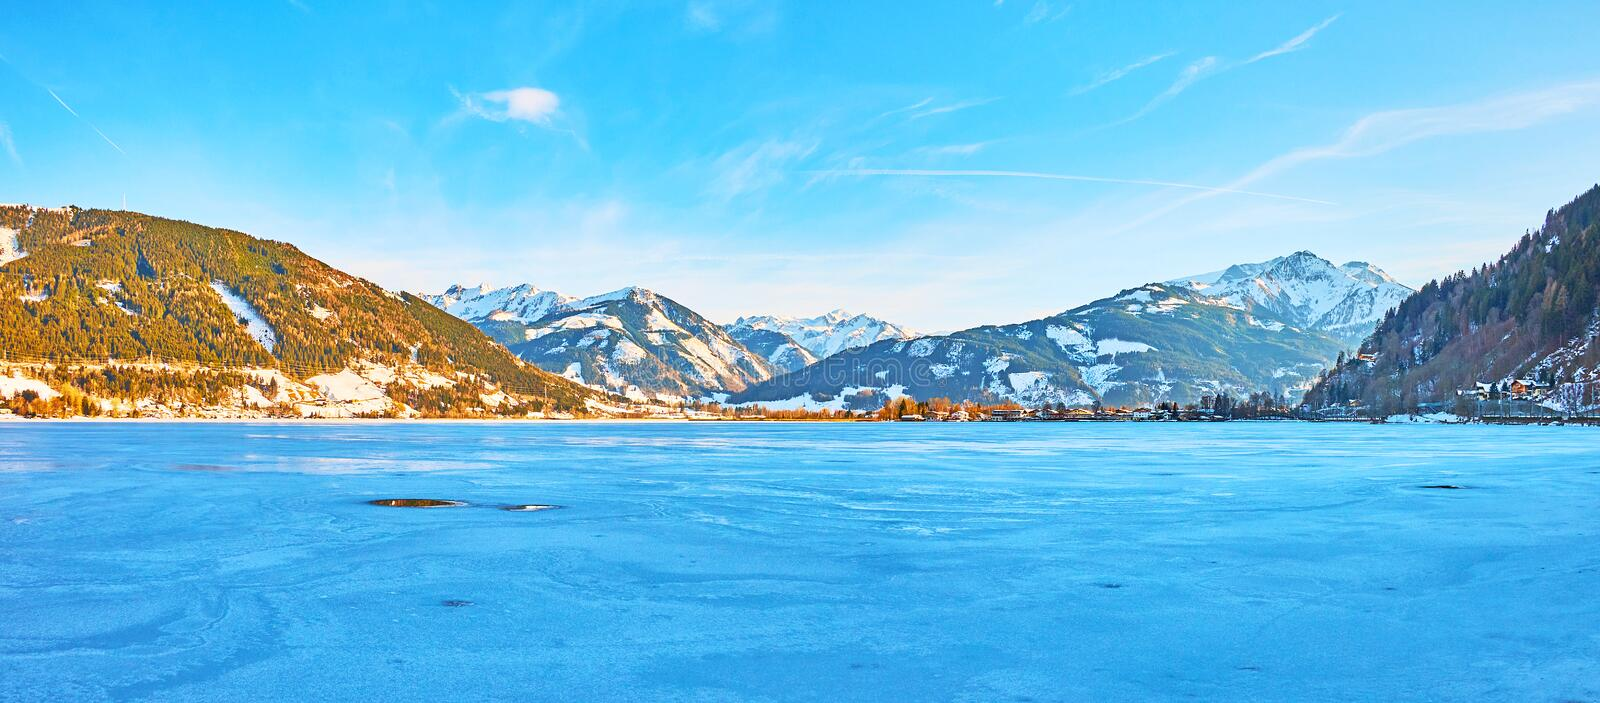 Evening walk by Zeller see lake, Zell am See, Austria stock photo